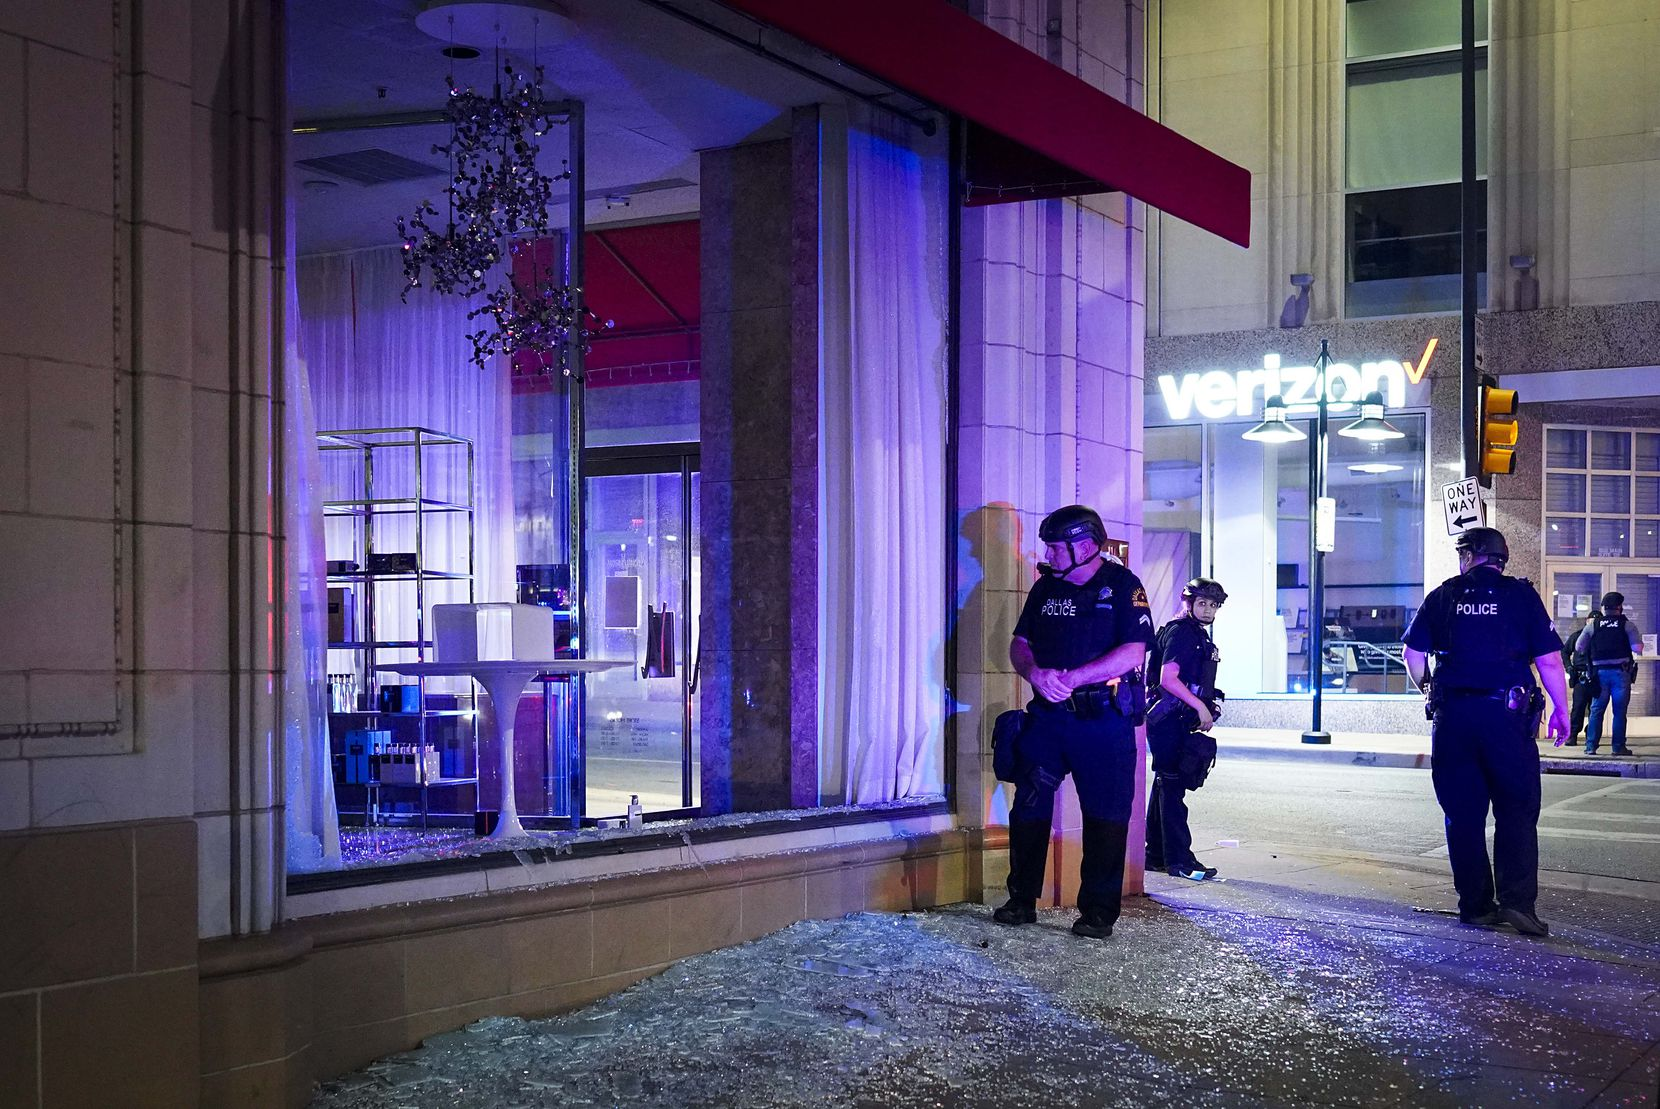 Dallas police stand guard amidst broken glass after windows were smashed at the Nieman Marcus store downtown following a protest against police brutality in the early morning hours of Saturday, May 30, 2020, in Dallas.